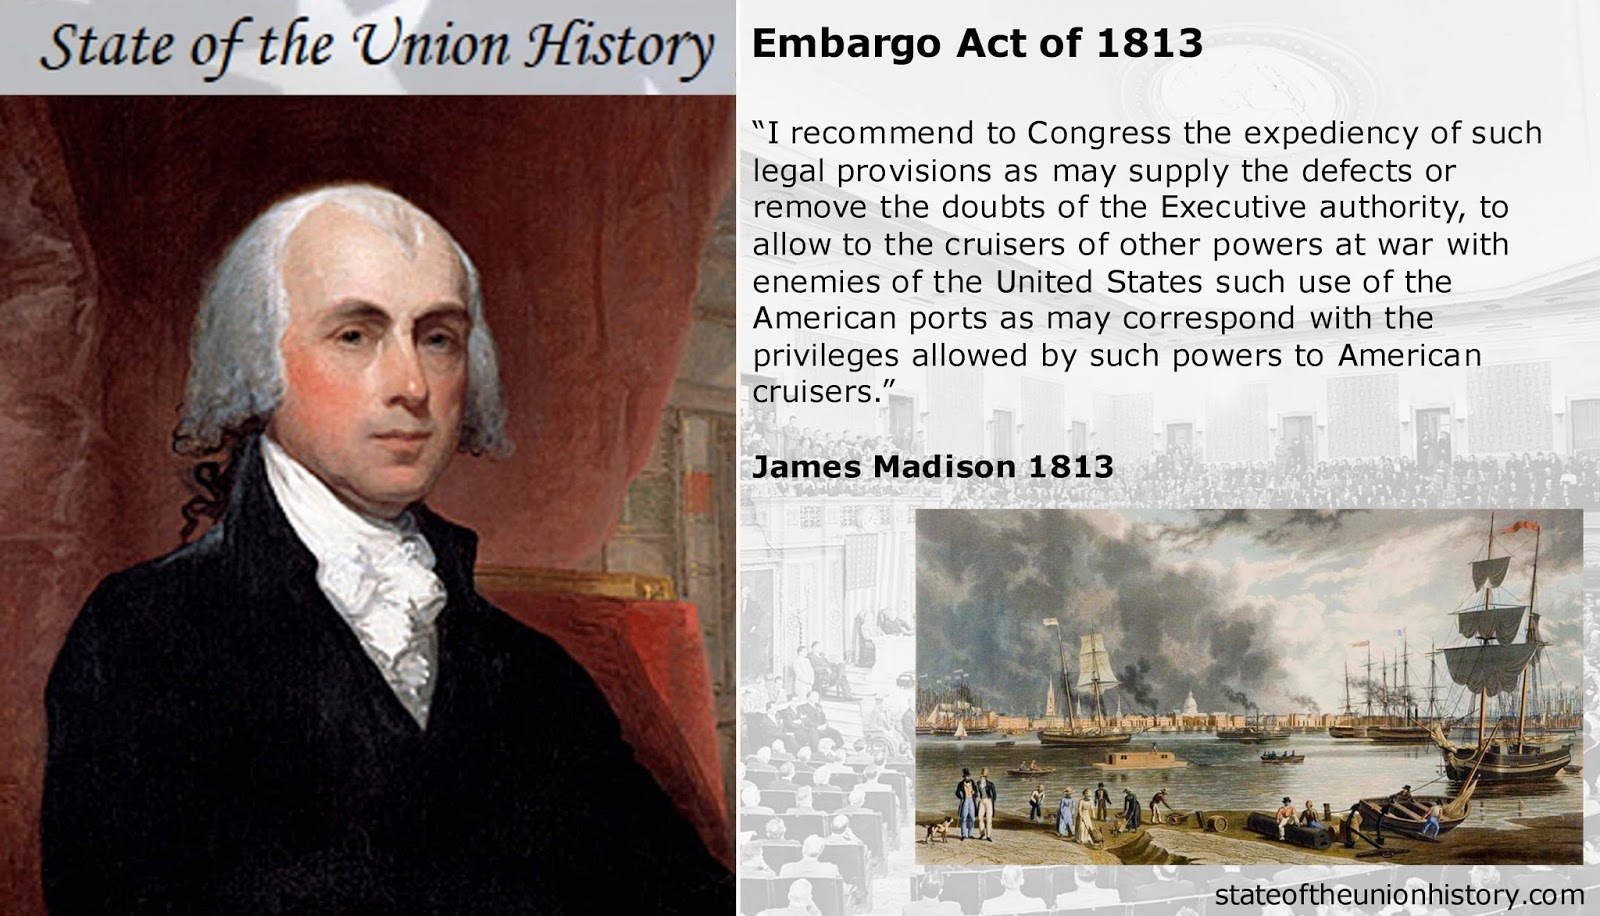 how did jefferson handle the embargo act of 1807 It was four days later that the united states congress passed the embargo act of 1807, on december 21, 1807, making the non-importation act obsolete jefferson continued to support the embargo act he saw it as an alternative to war, and he wanted to keep the united states out of conflict for as long as possible.